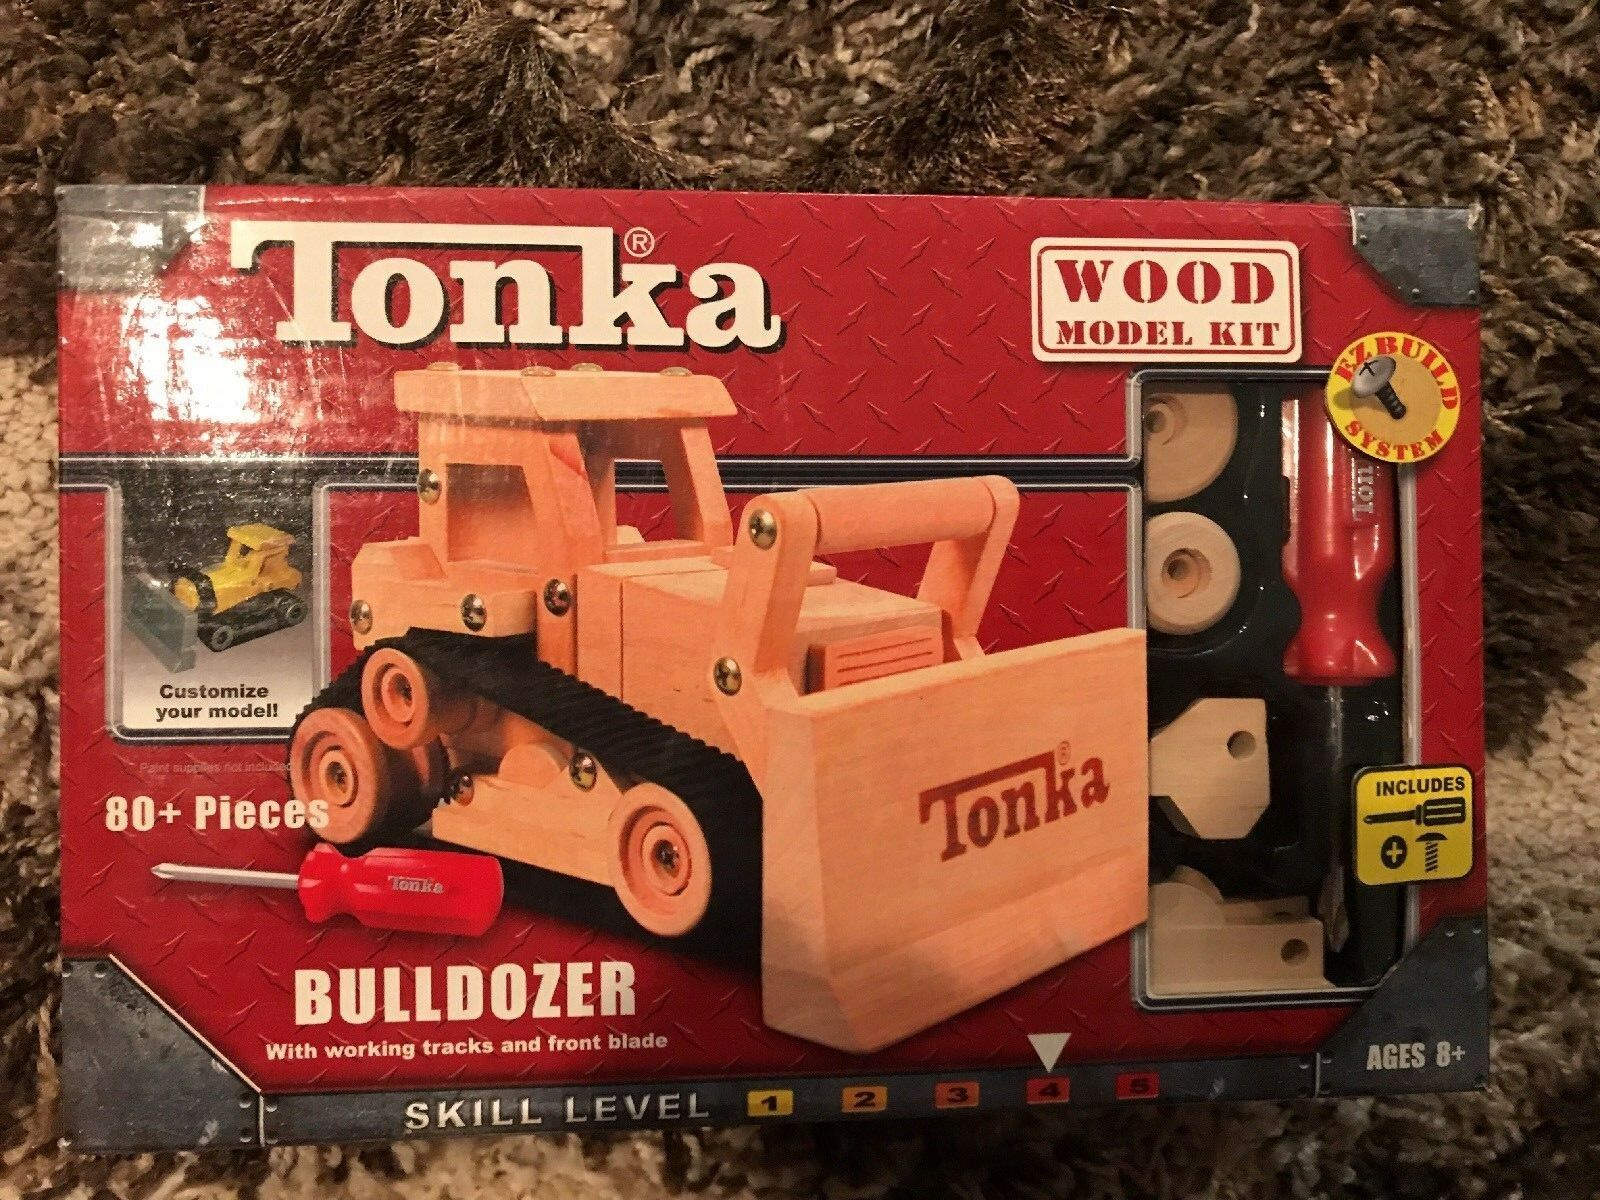 TONKA Bois Bulldozer Model Kit new in box 2004